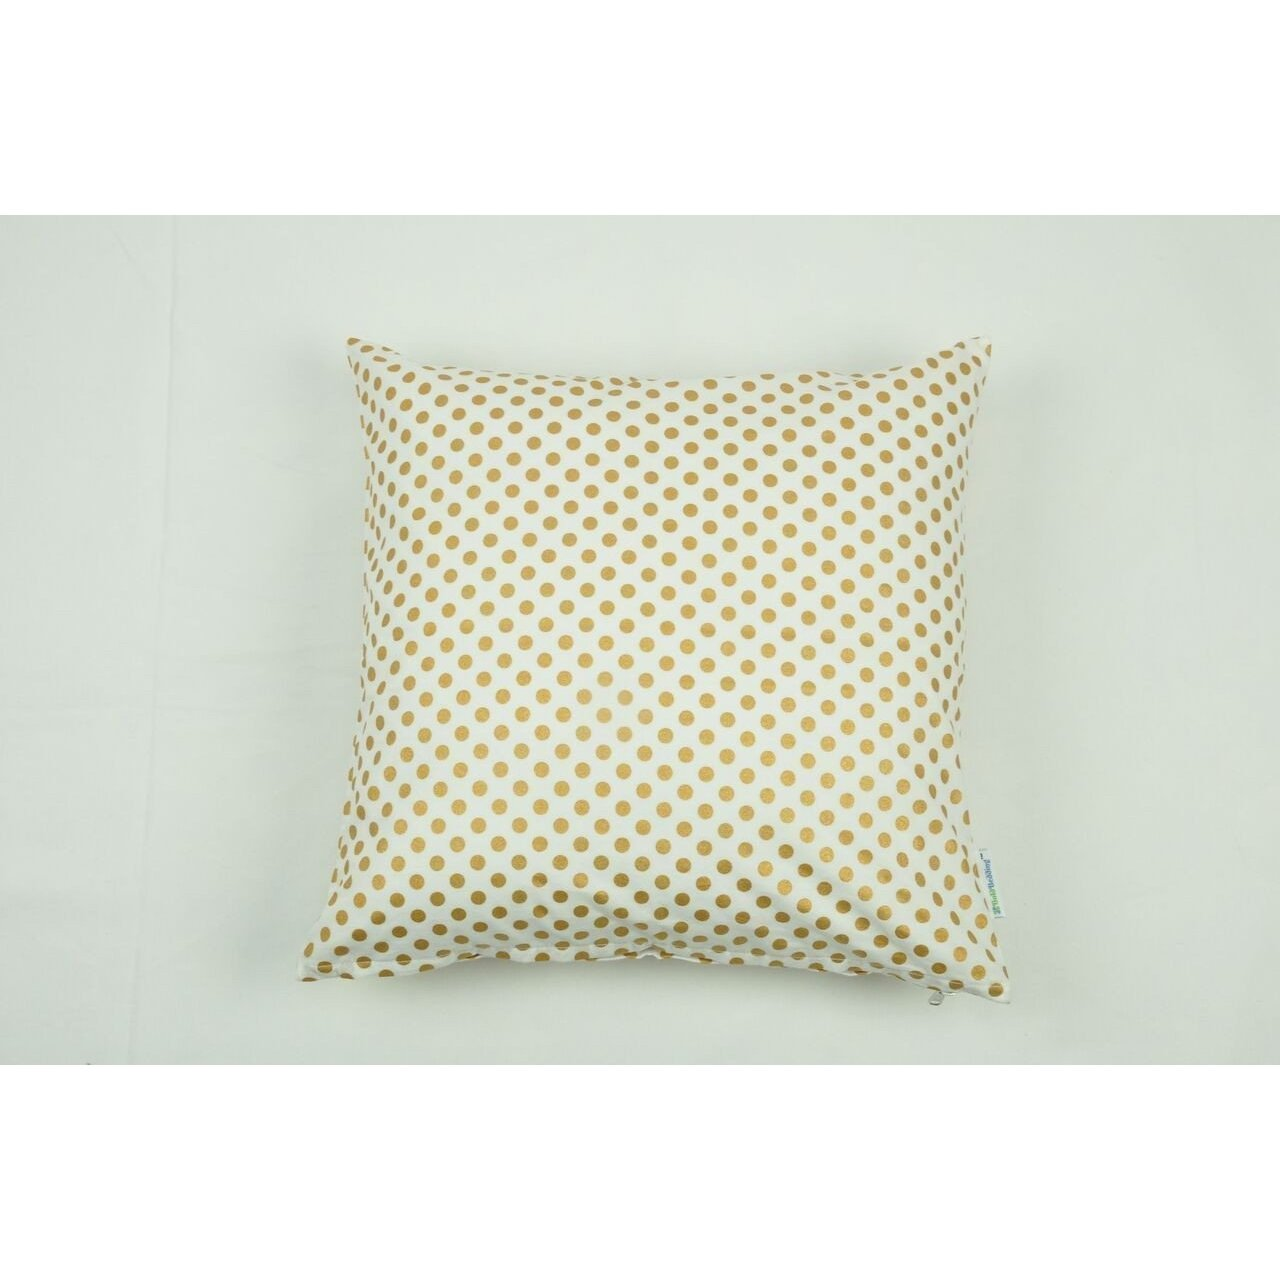 Throw pillow cover metallic gold dots square pillows jack and jill boutique